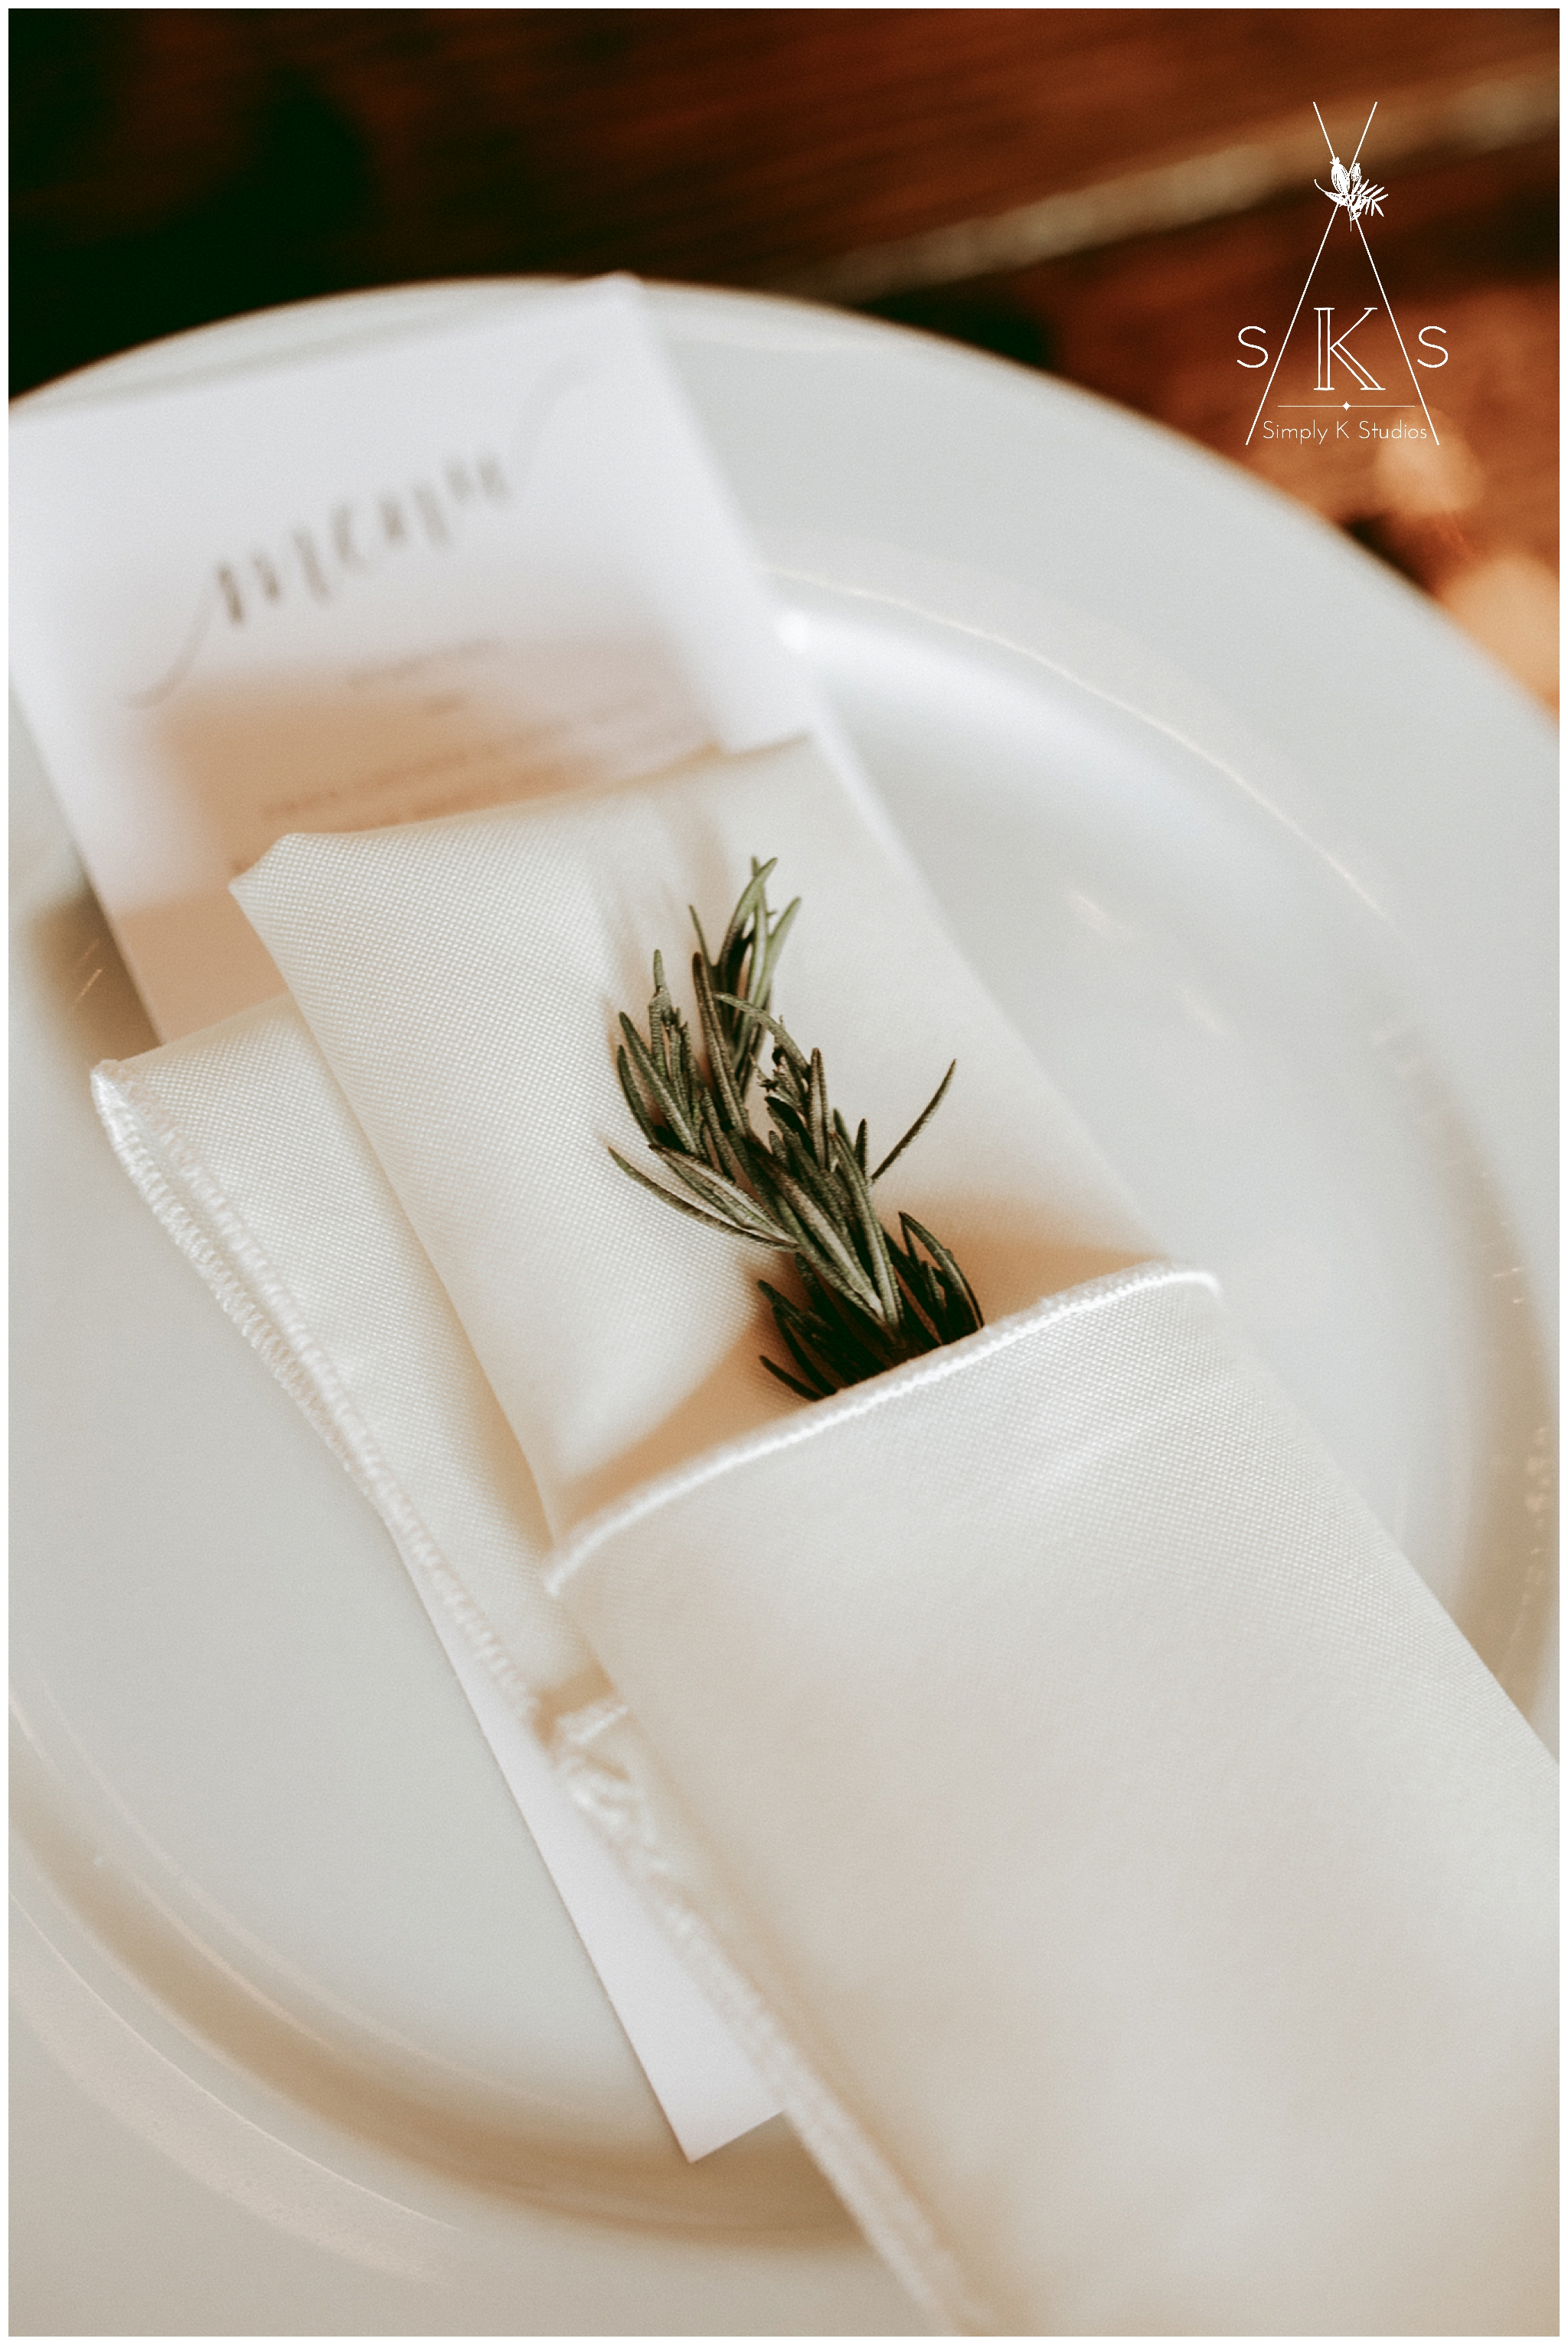 75 Placesettings for a wedding.jpg